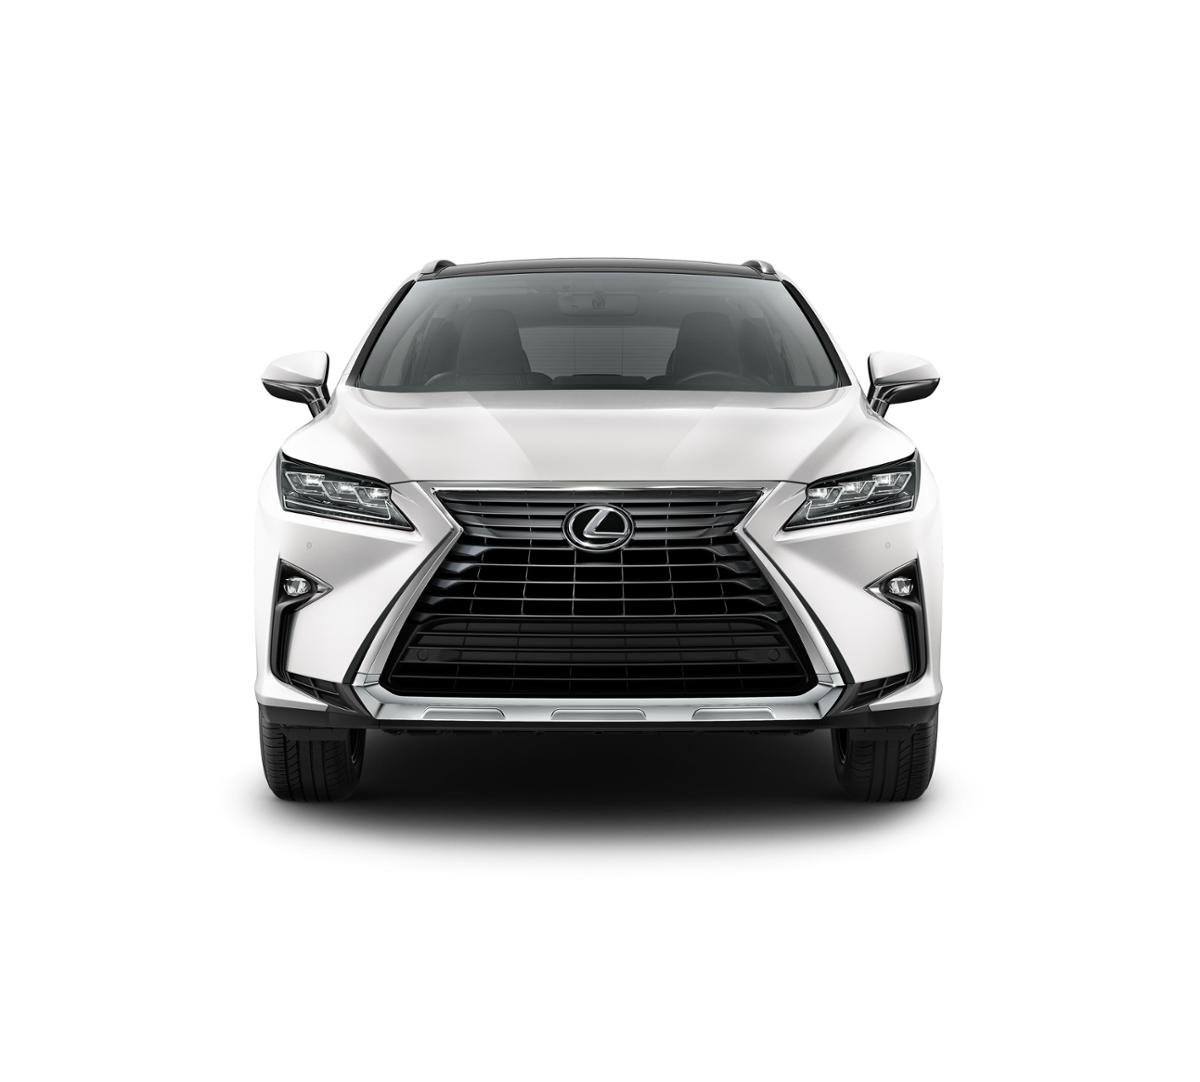 Lexus Dealership In Va: 2019 Lexus RX 350 For Sale In Virginia Beach